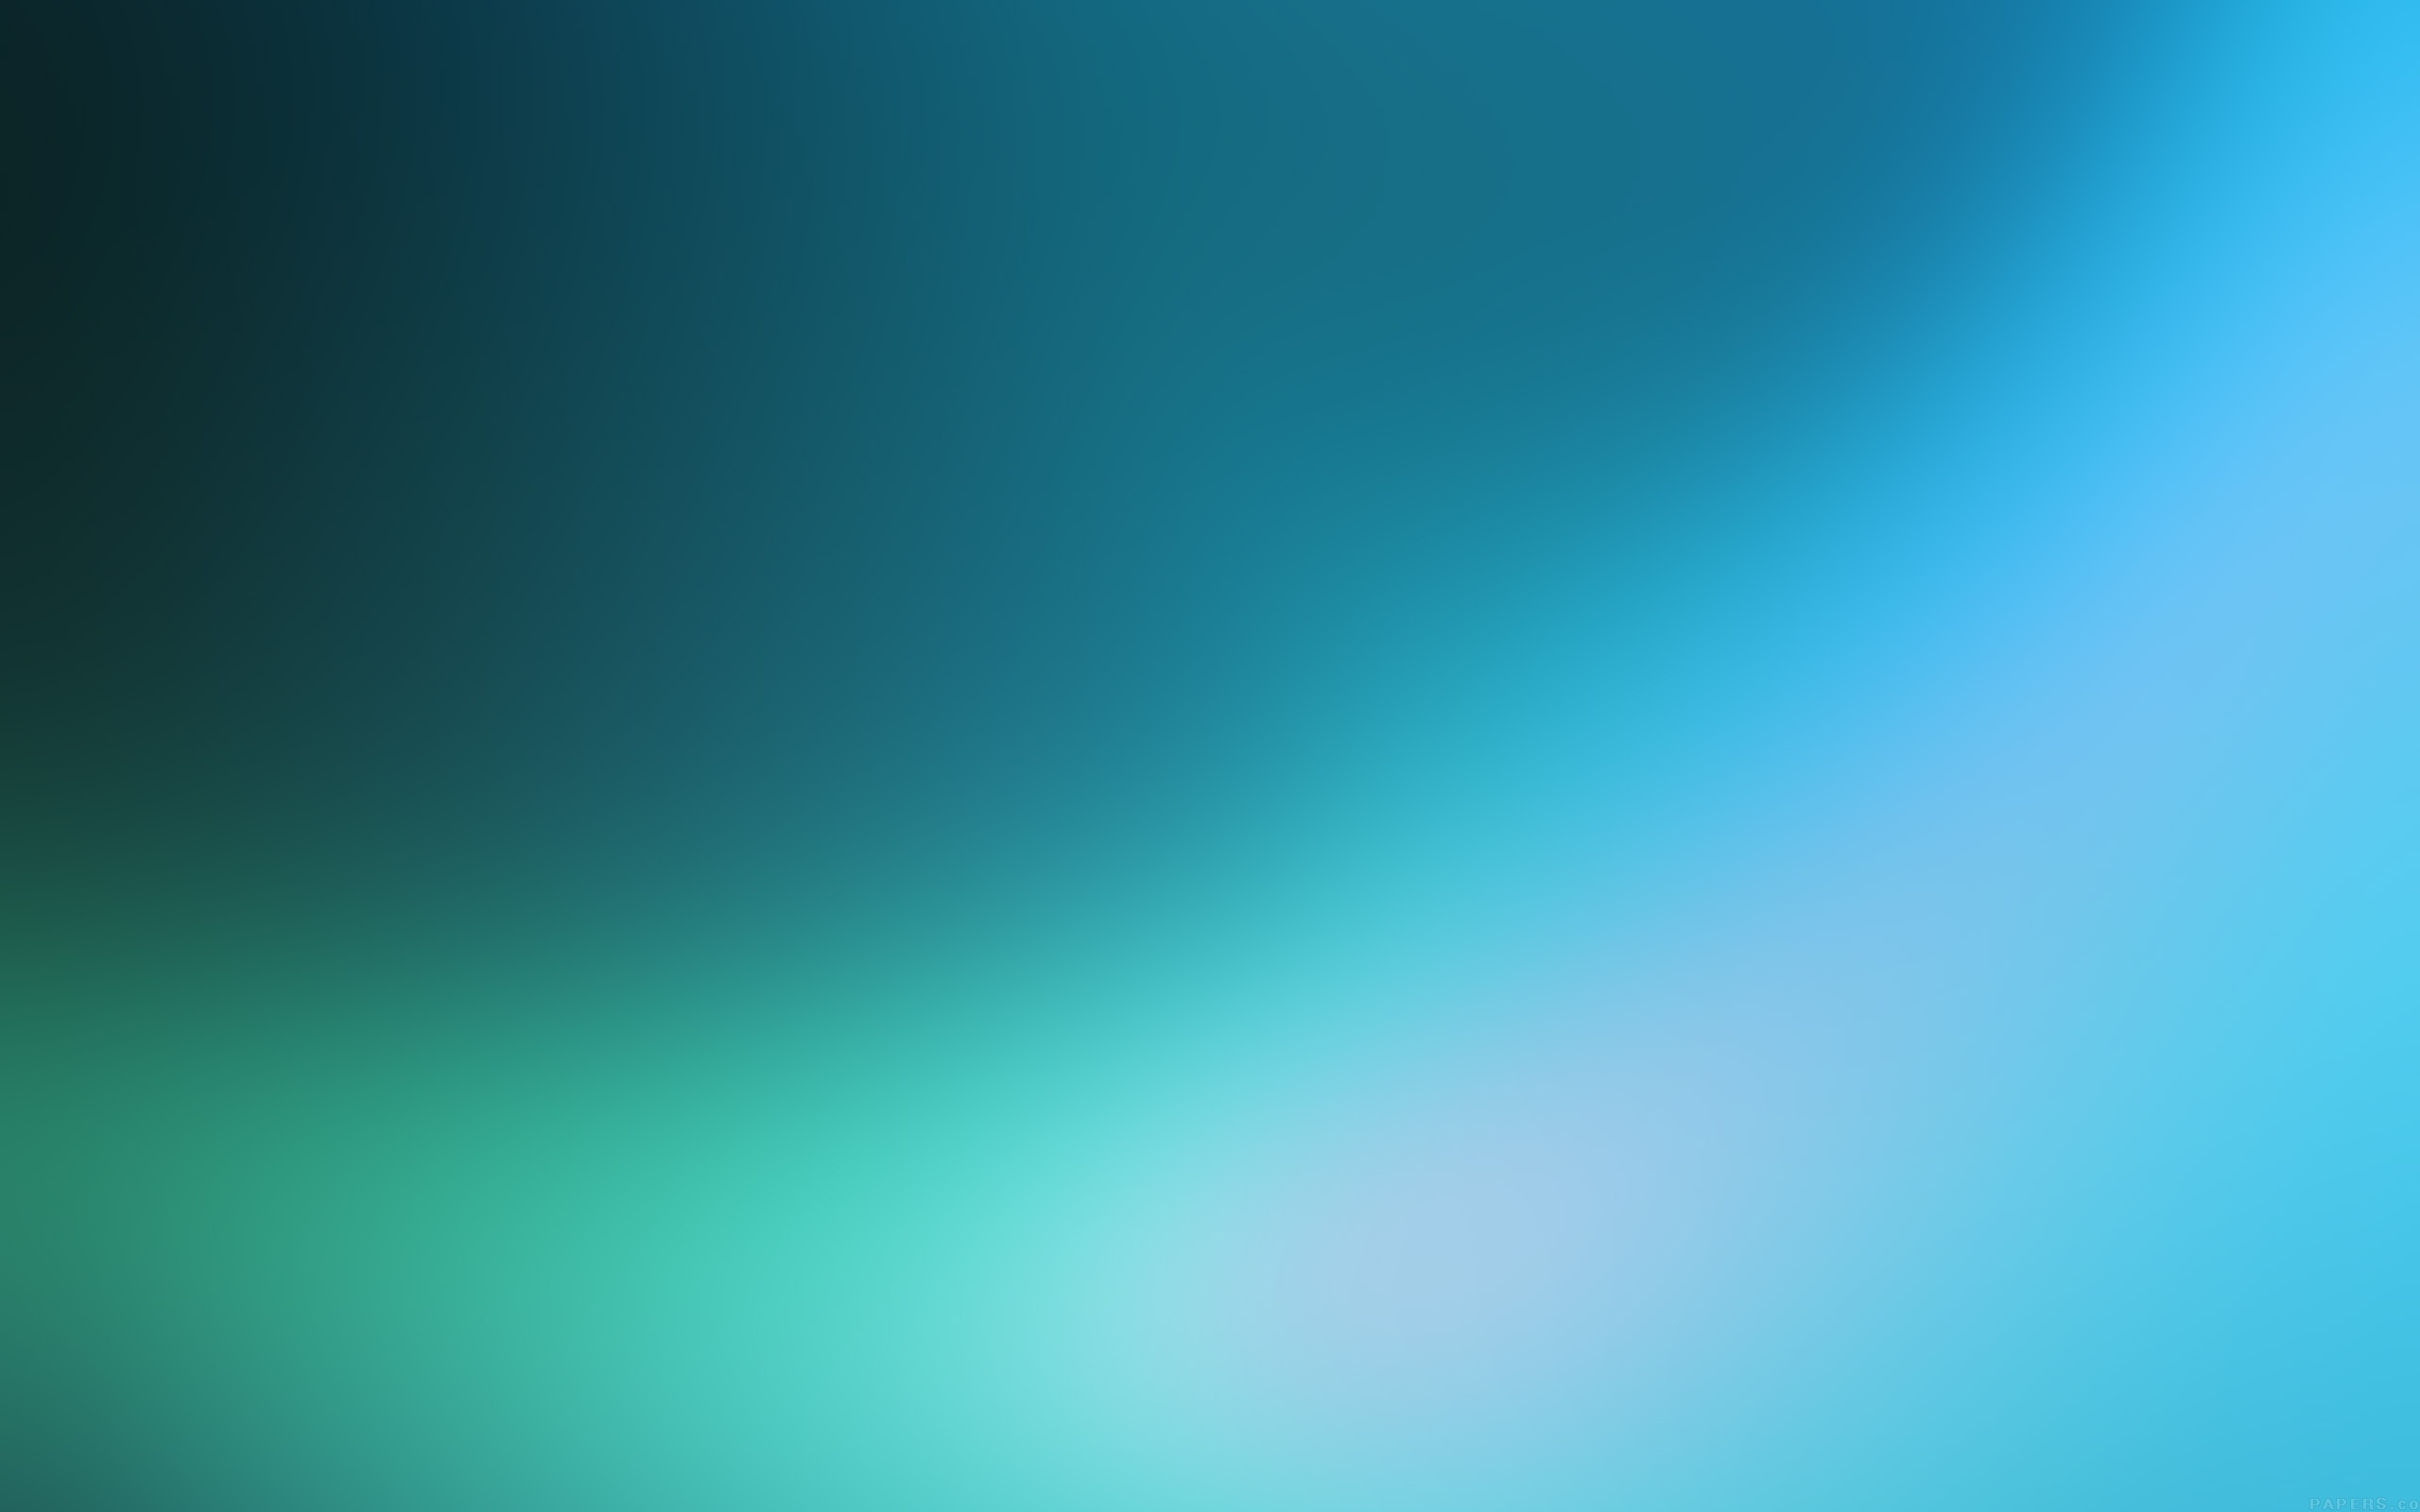 ipad mini retina wallpaper parallax